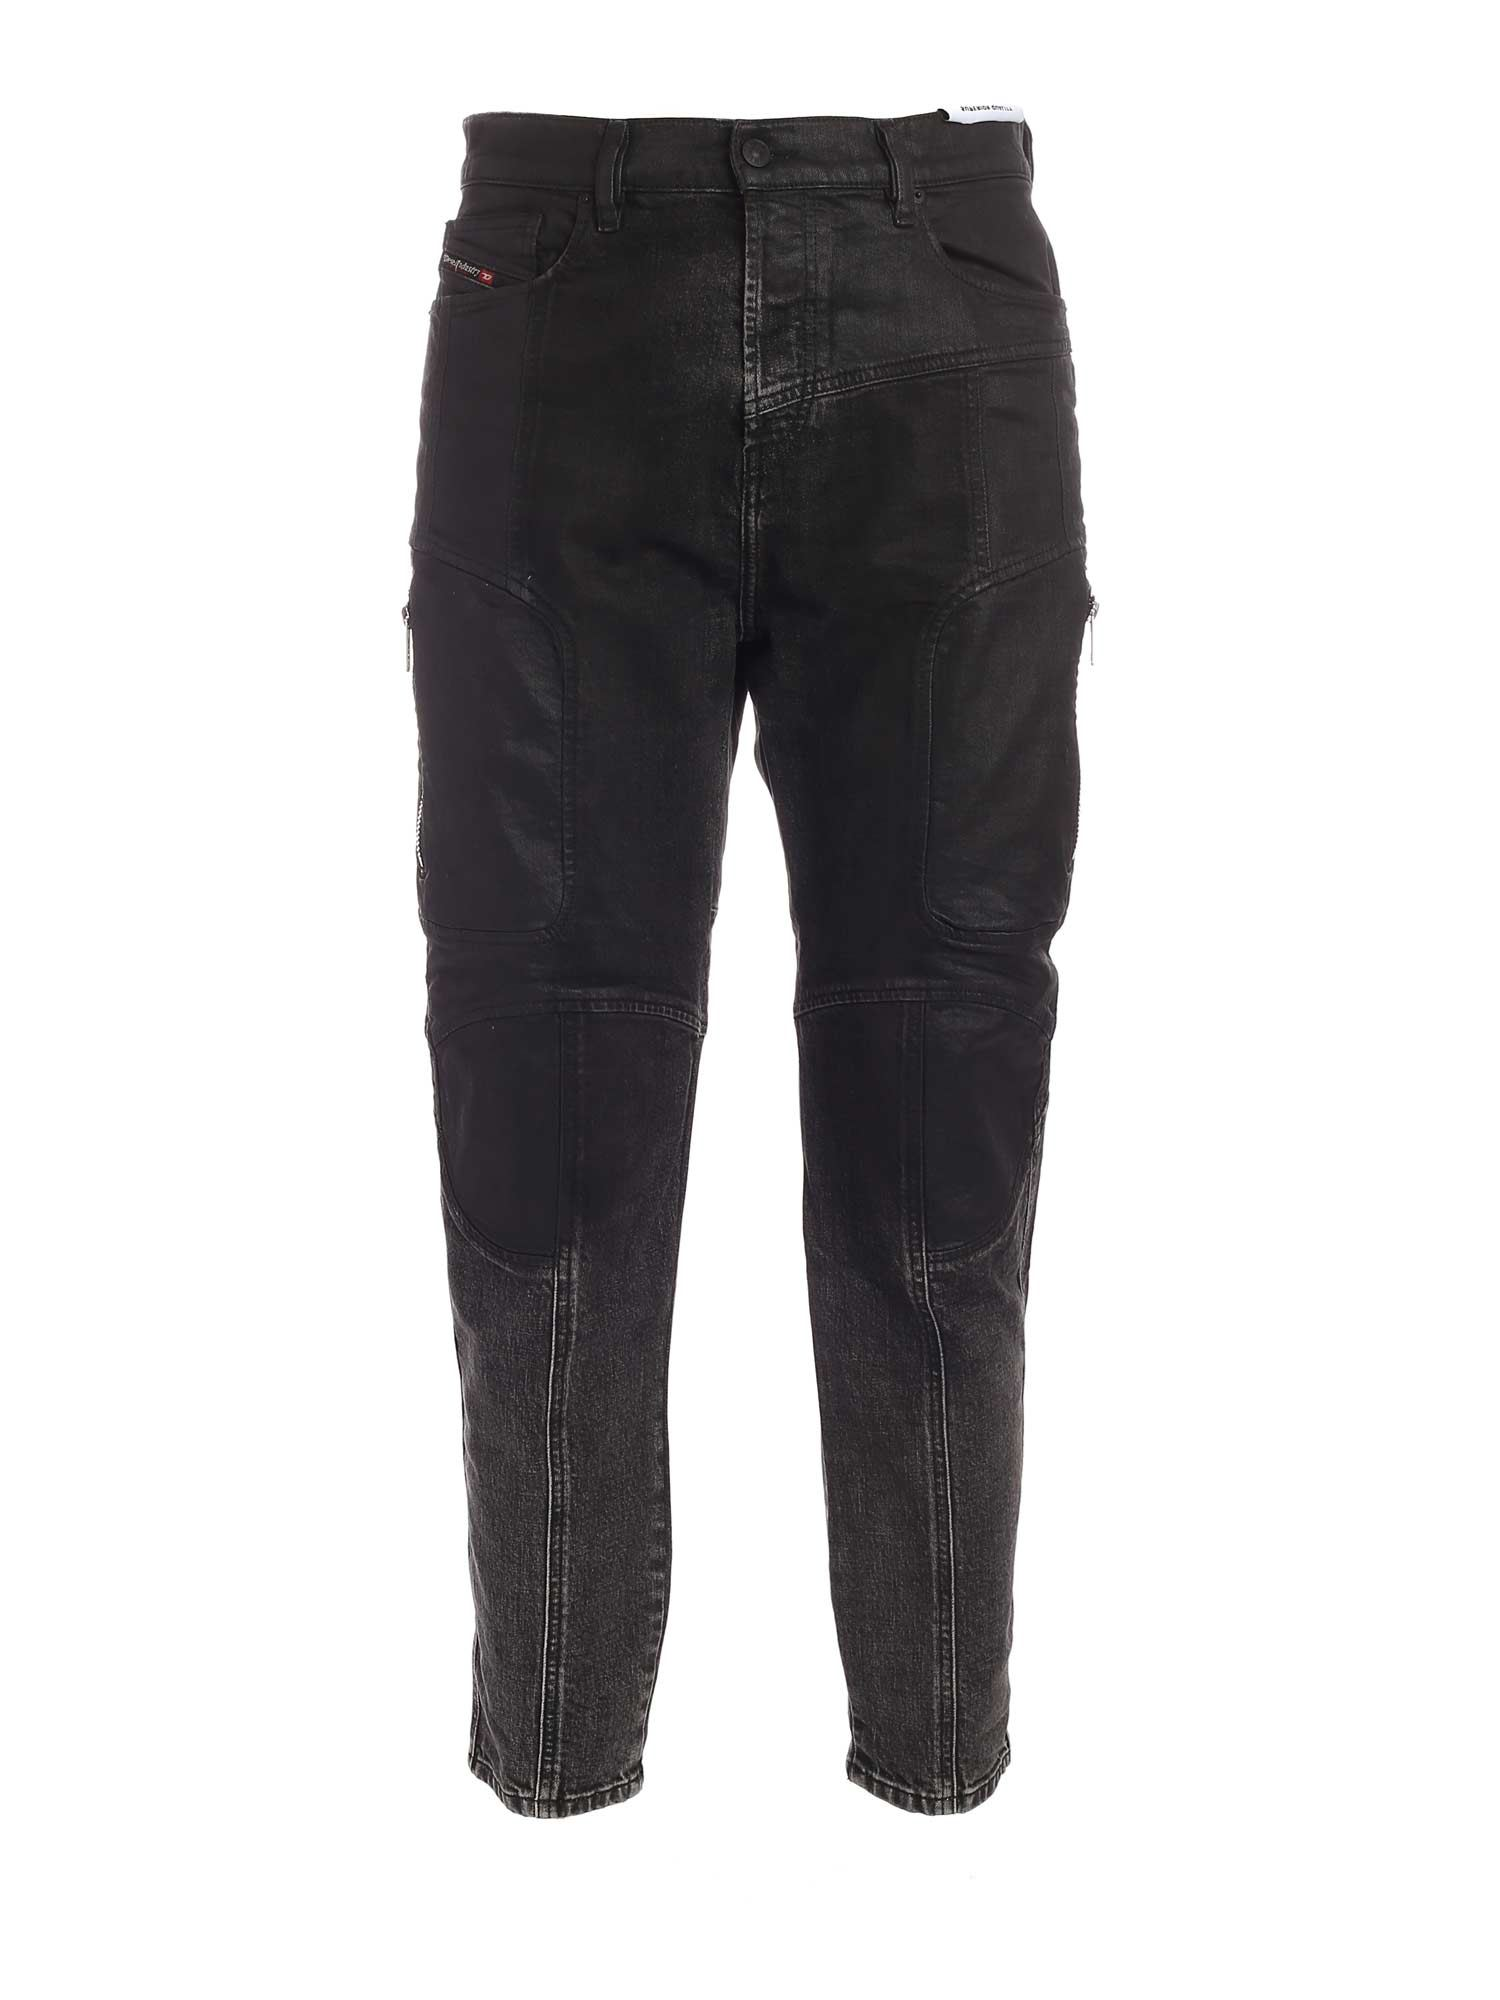 Diesel D-VIDER JEANS IN BLACK